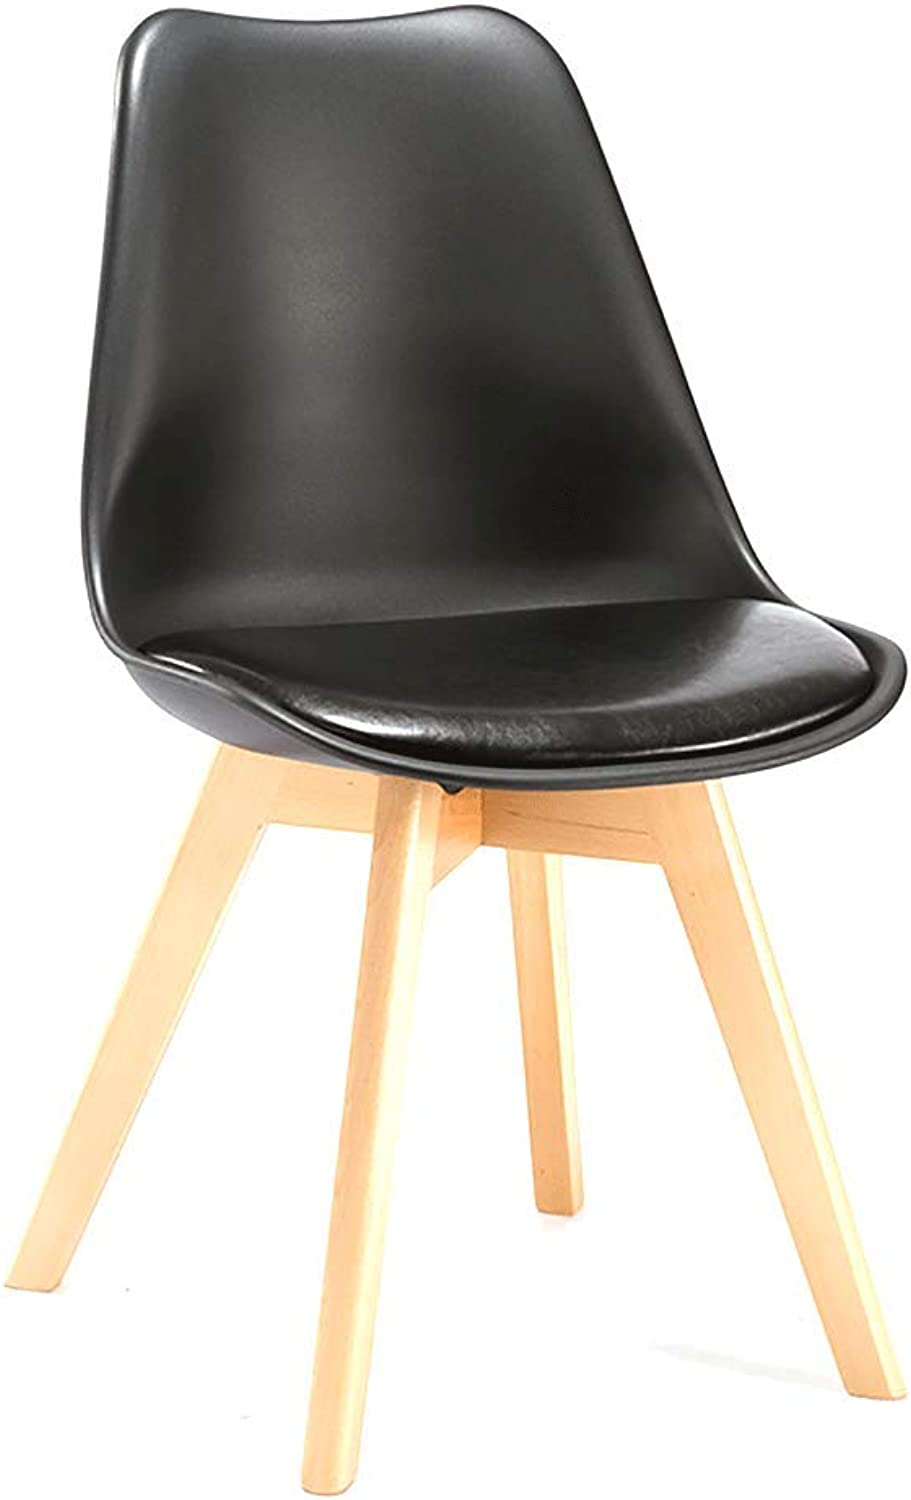 Teng Peng Chair - - European Creative Retro Dining Chair, Natural Wooden Leg Chair Living Room, Study, Dining Room Comfortable seat (Size 83X48X48 cm) Household Products (color   Black)